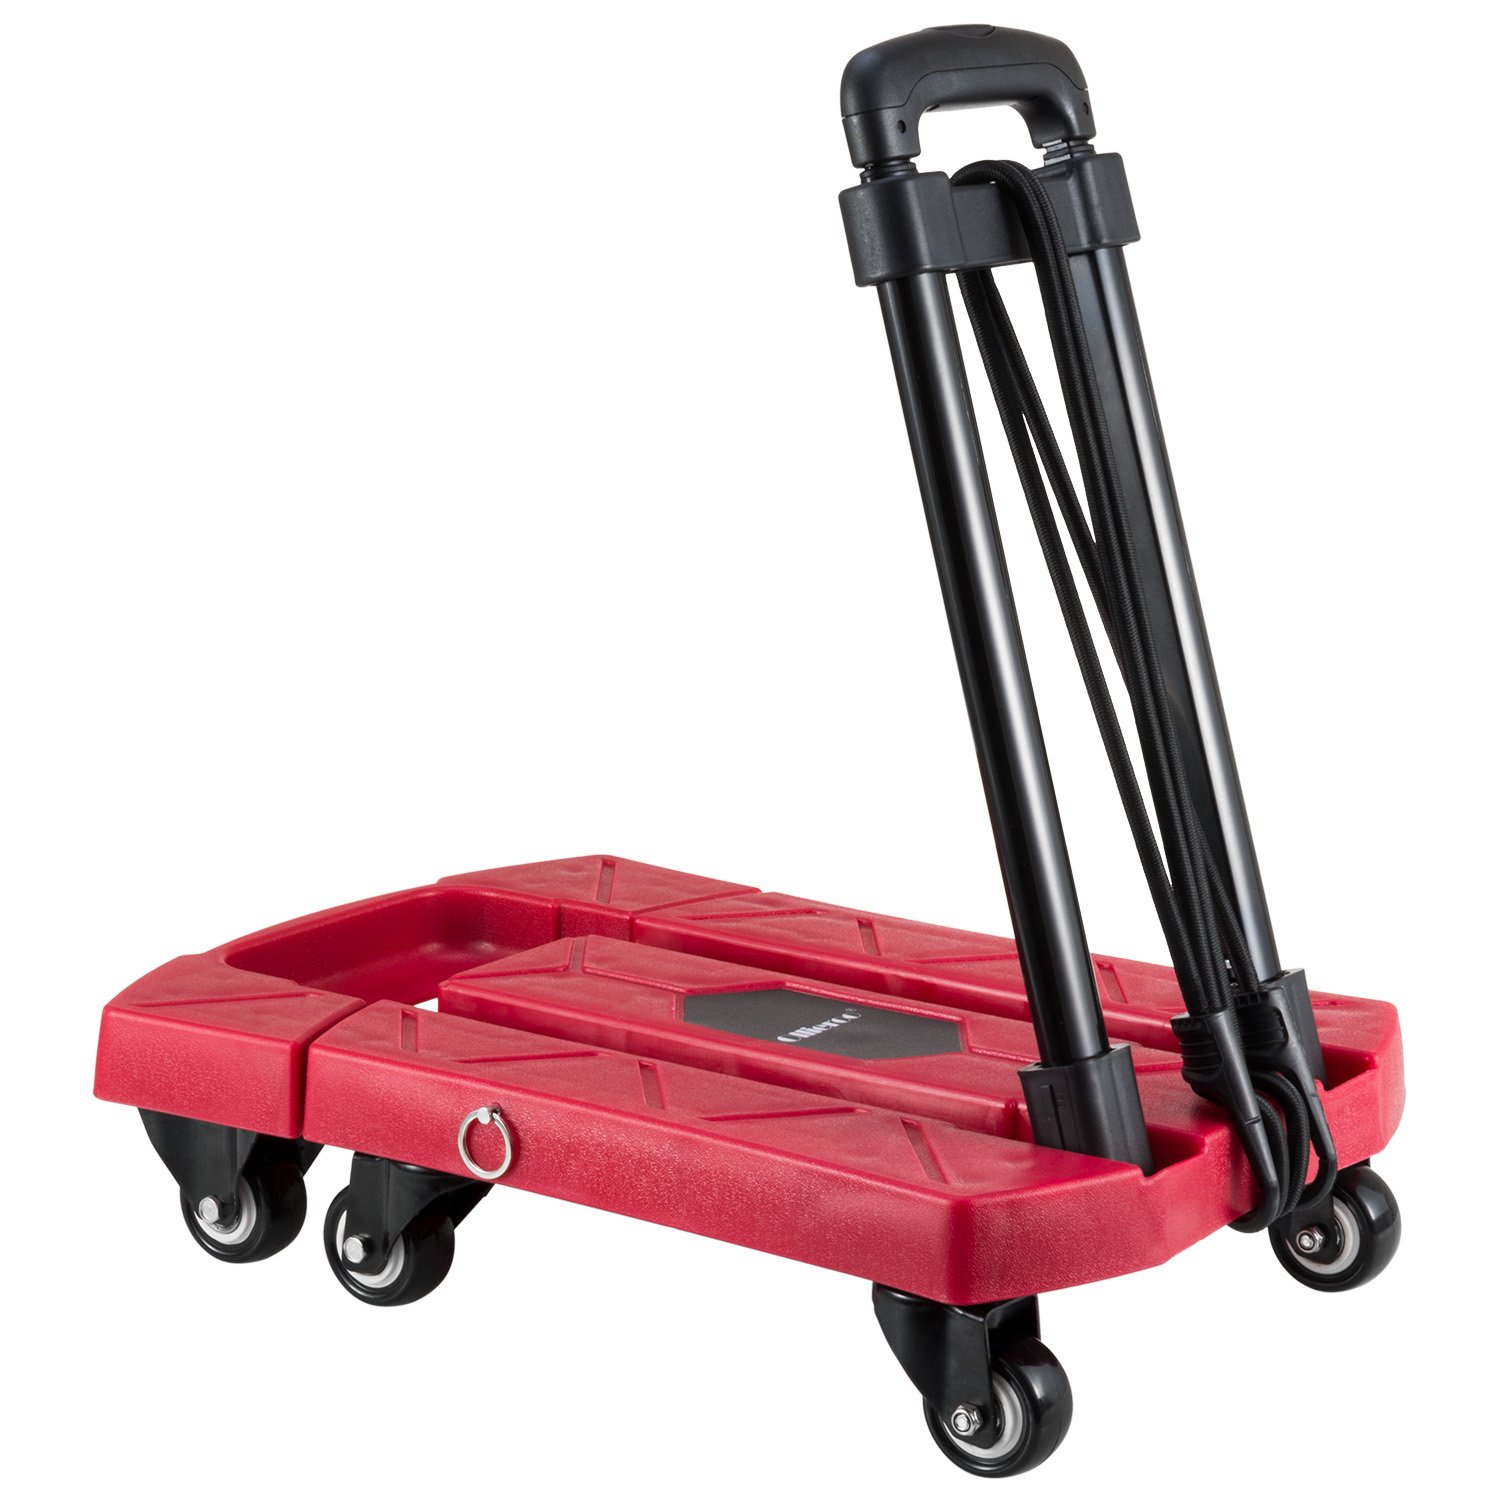 Ollieroo Cart Compact Personal Folding Hand Truck Luggage Cart with 6 wheels and Free Rope, 440 Lb Capacity Red